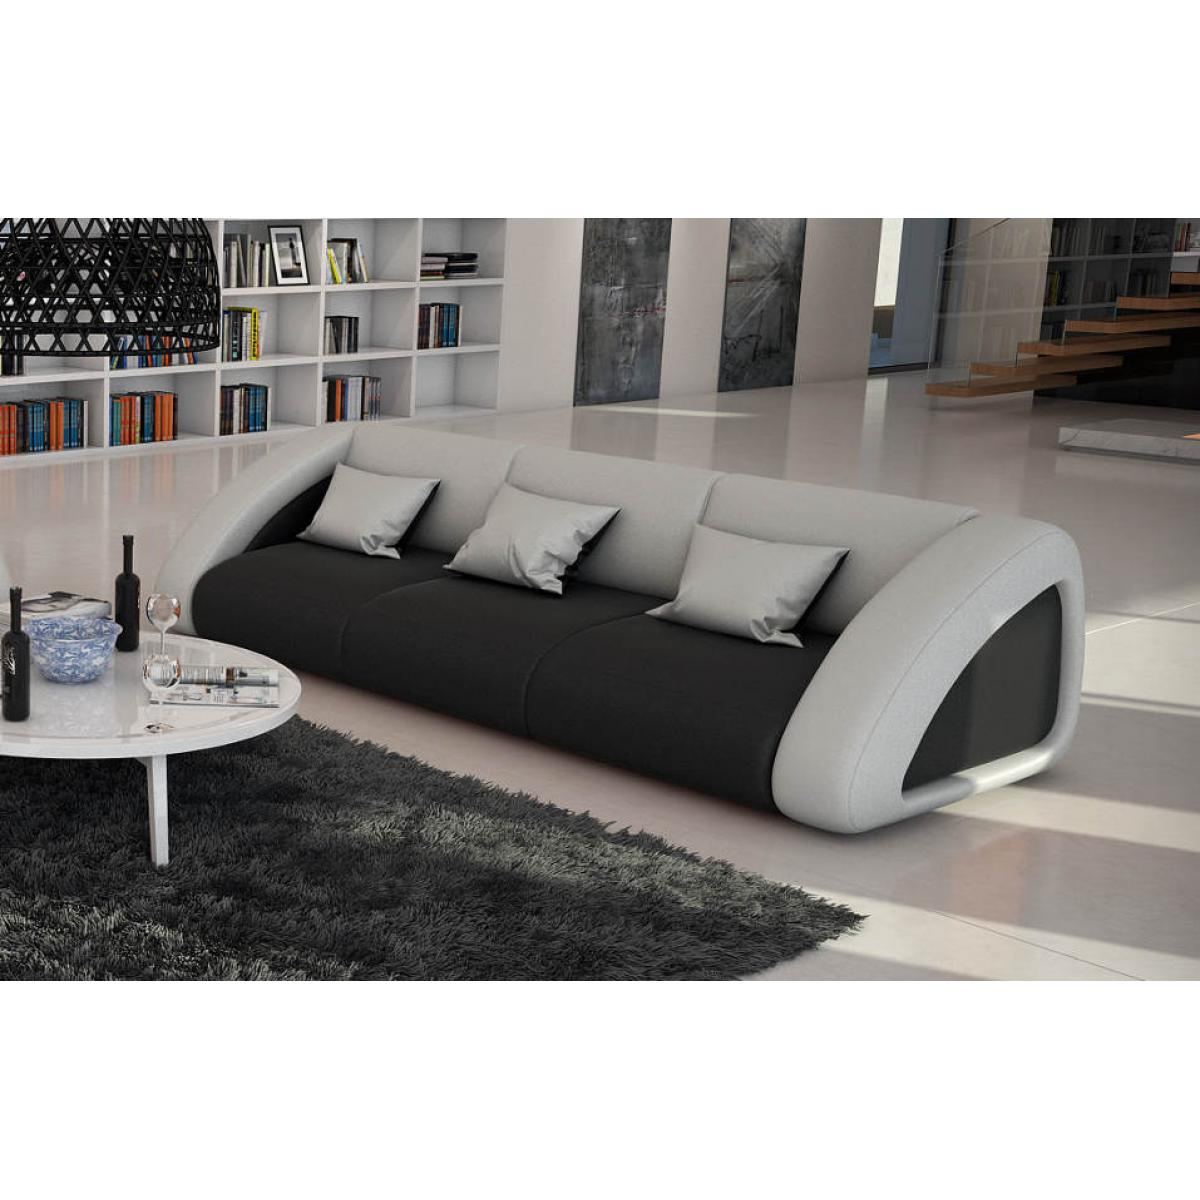 sofagarnitur couch garnitur nassau 3 2 1 designersofa design couch sitzgruppe ebay. Black Bedroom Furniture Sets. Home Design Ideas